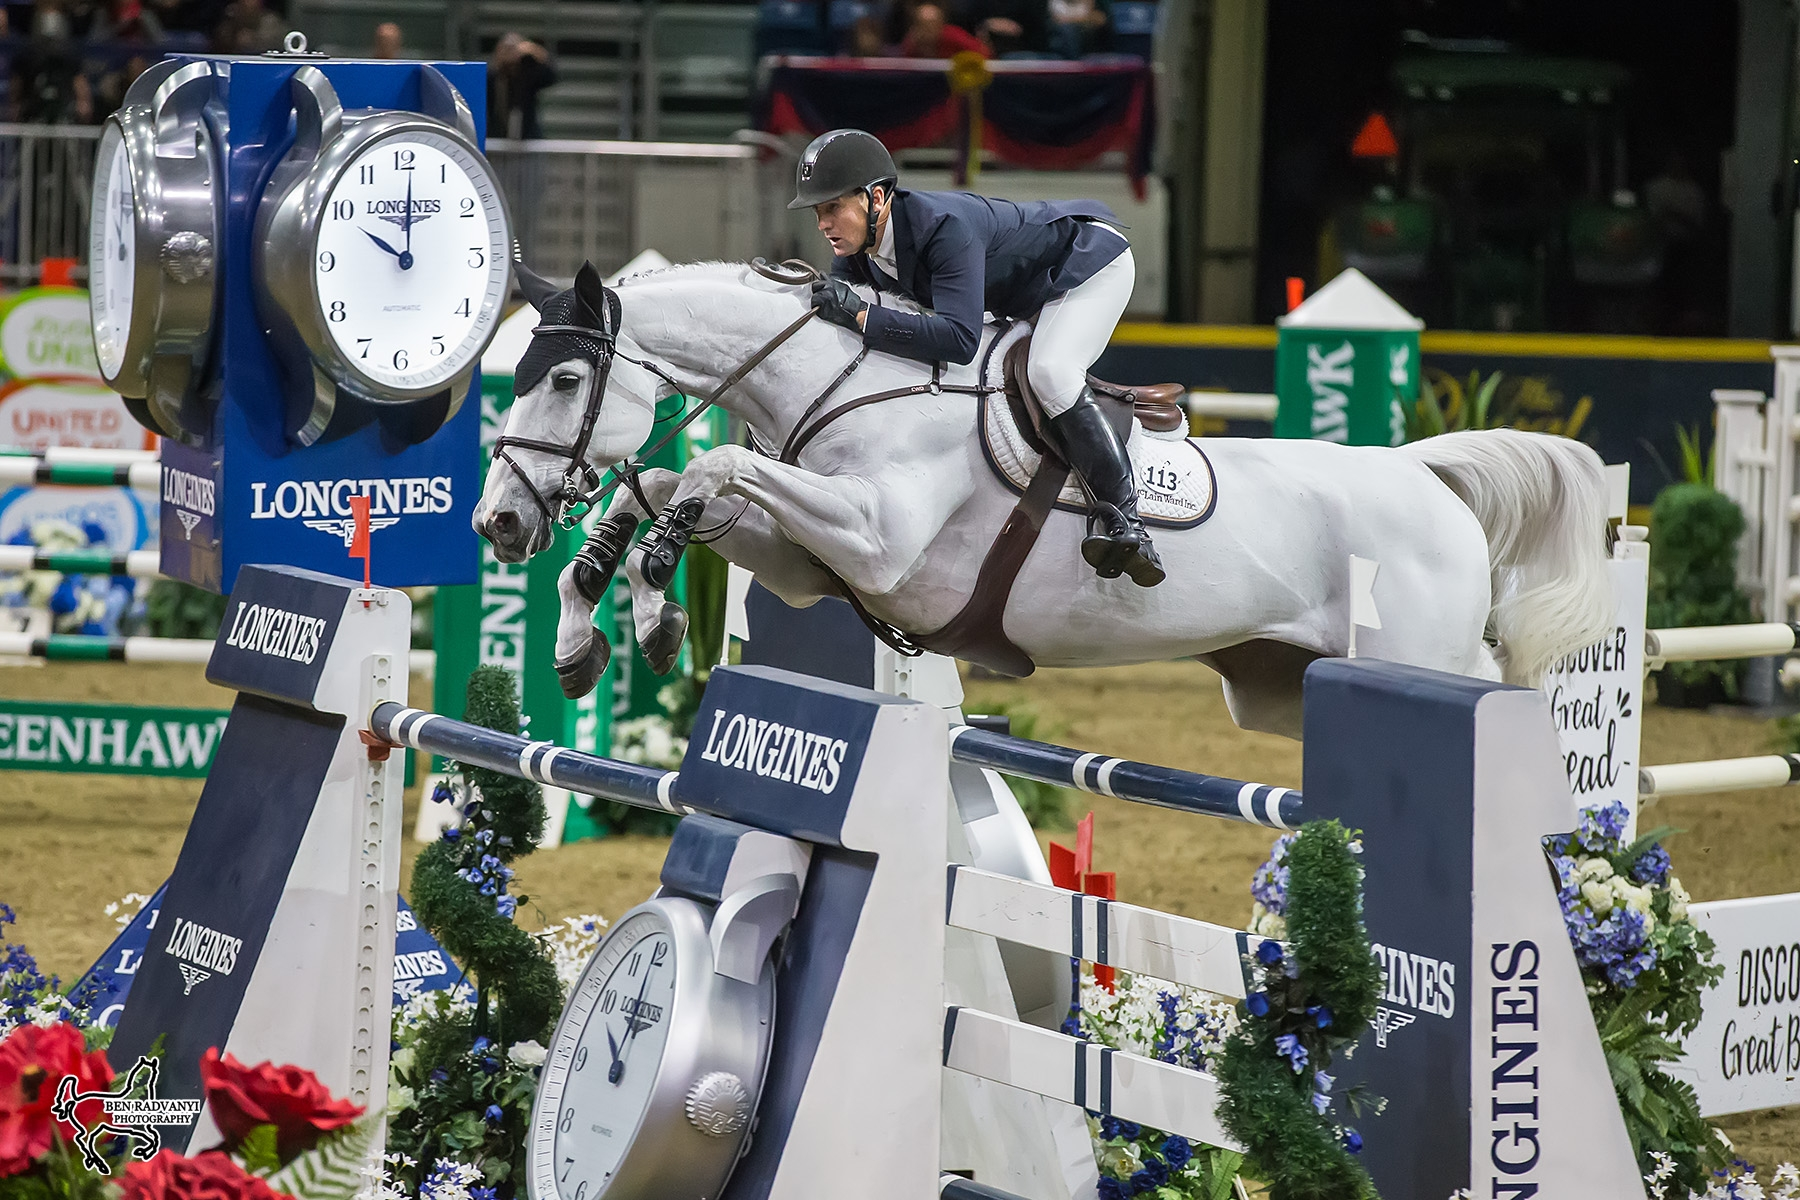 Two-time U.S. Olympic team gold medalist McLain Ward and Malou finished second in the $50,000 Weston Canadian Open at the CSI4*-W Royal Horse Show.<br><b>Photo by <a href='http://benradvanyi.photoshelter.com/#!/index/' target='_blank'>Ben Radvanyi Photography</a></b>